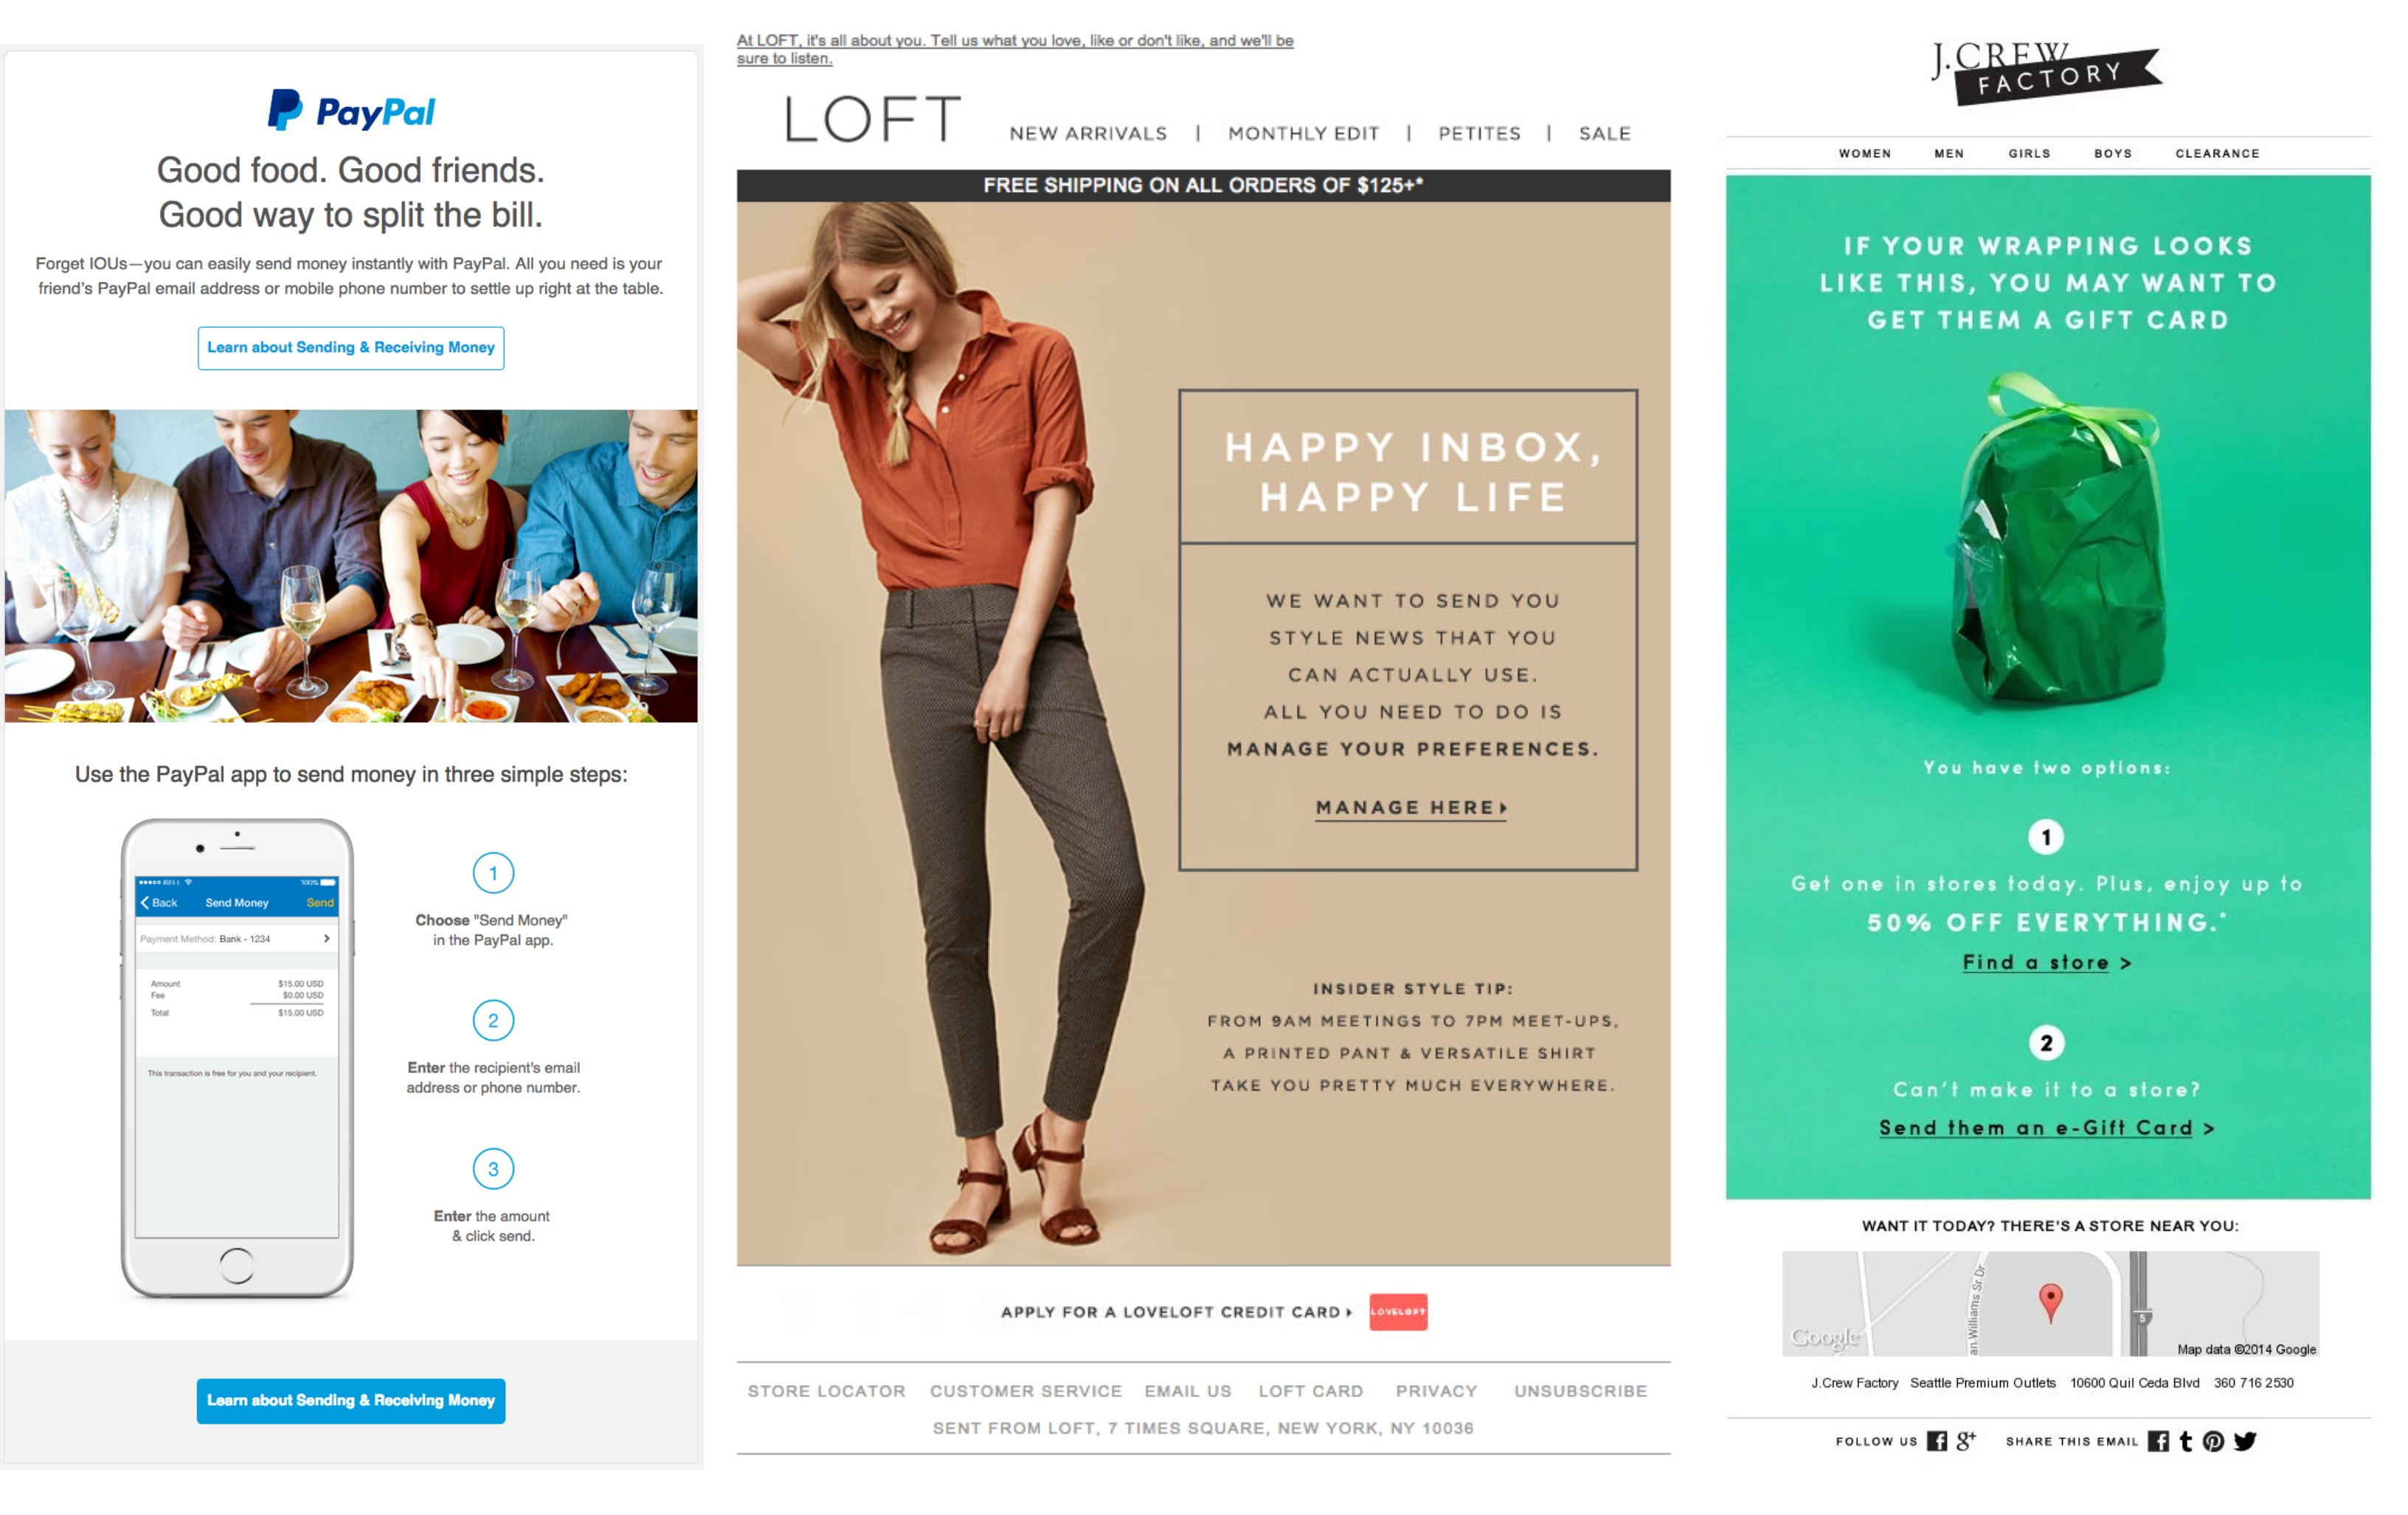 Email Marketing Examples from PayPal Loft and JCrew